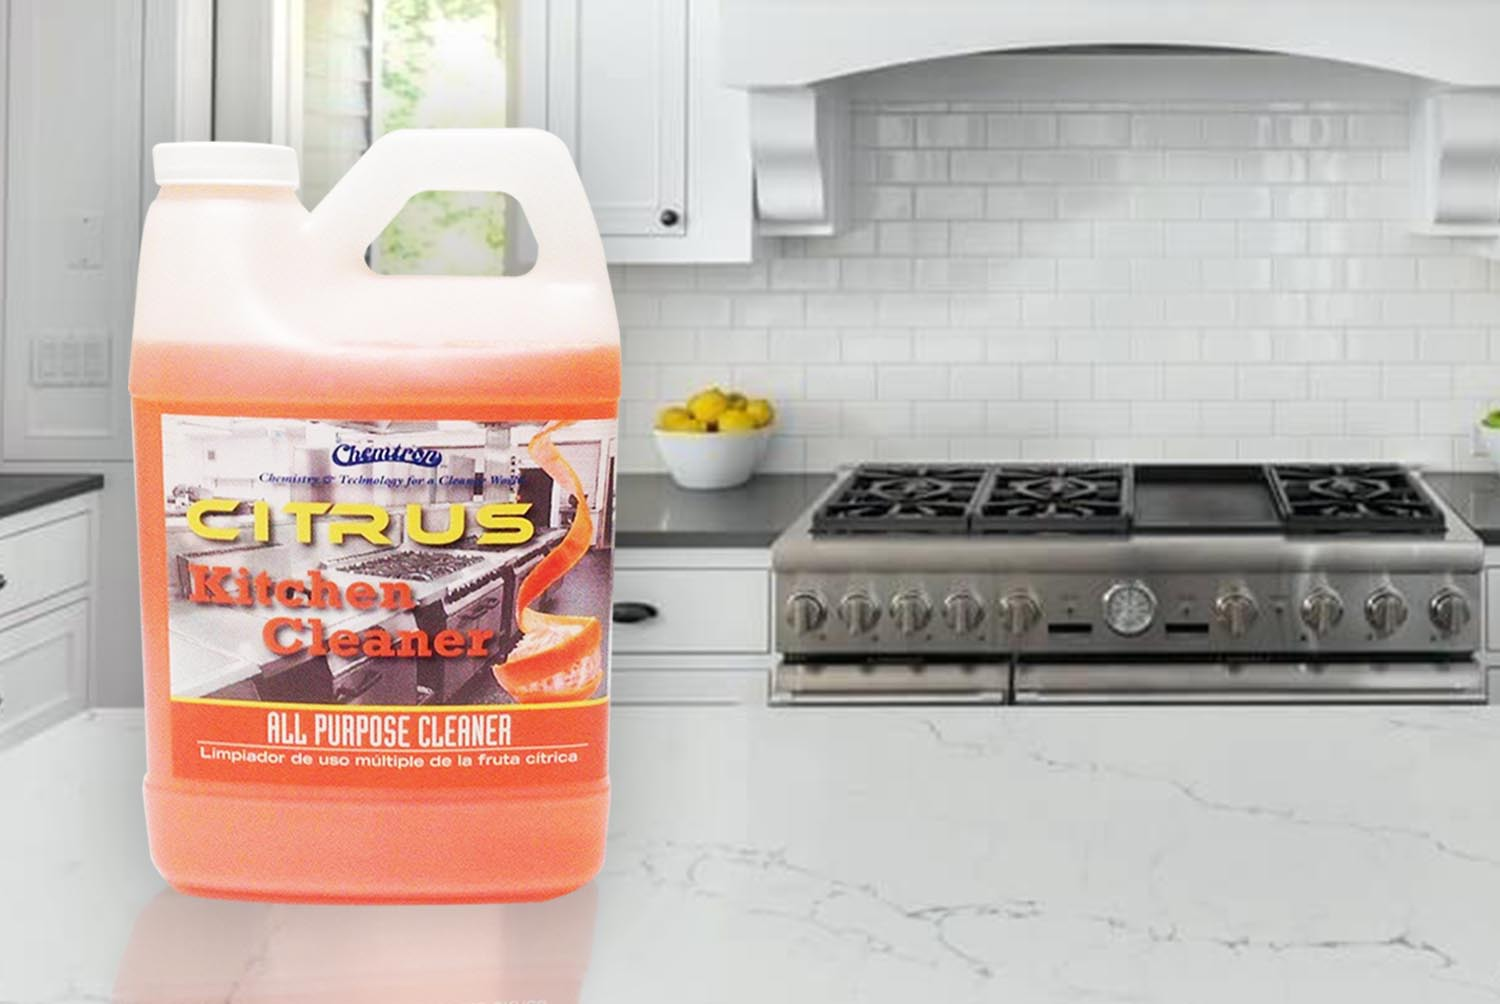 Citrus Kitchen Cleaner on the floor after use